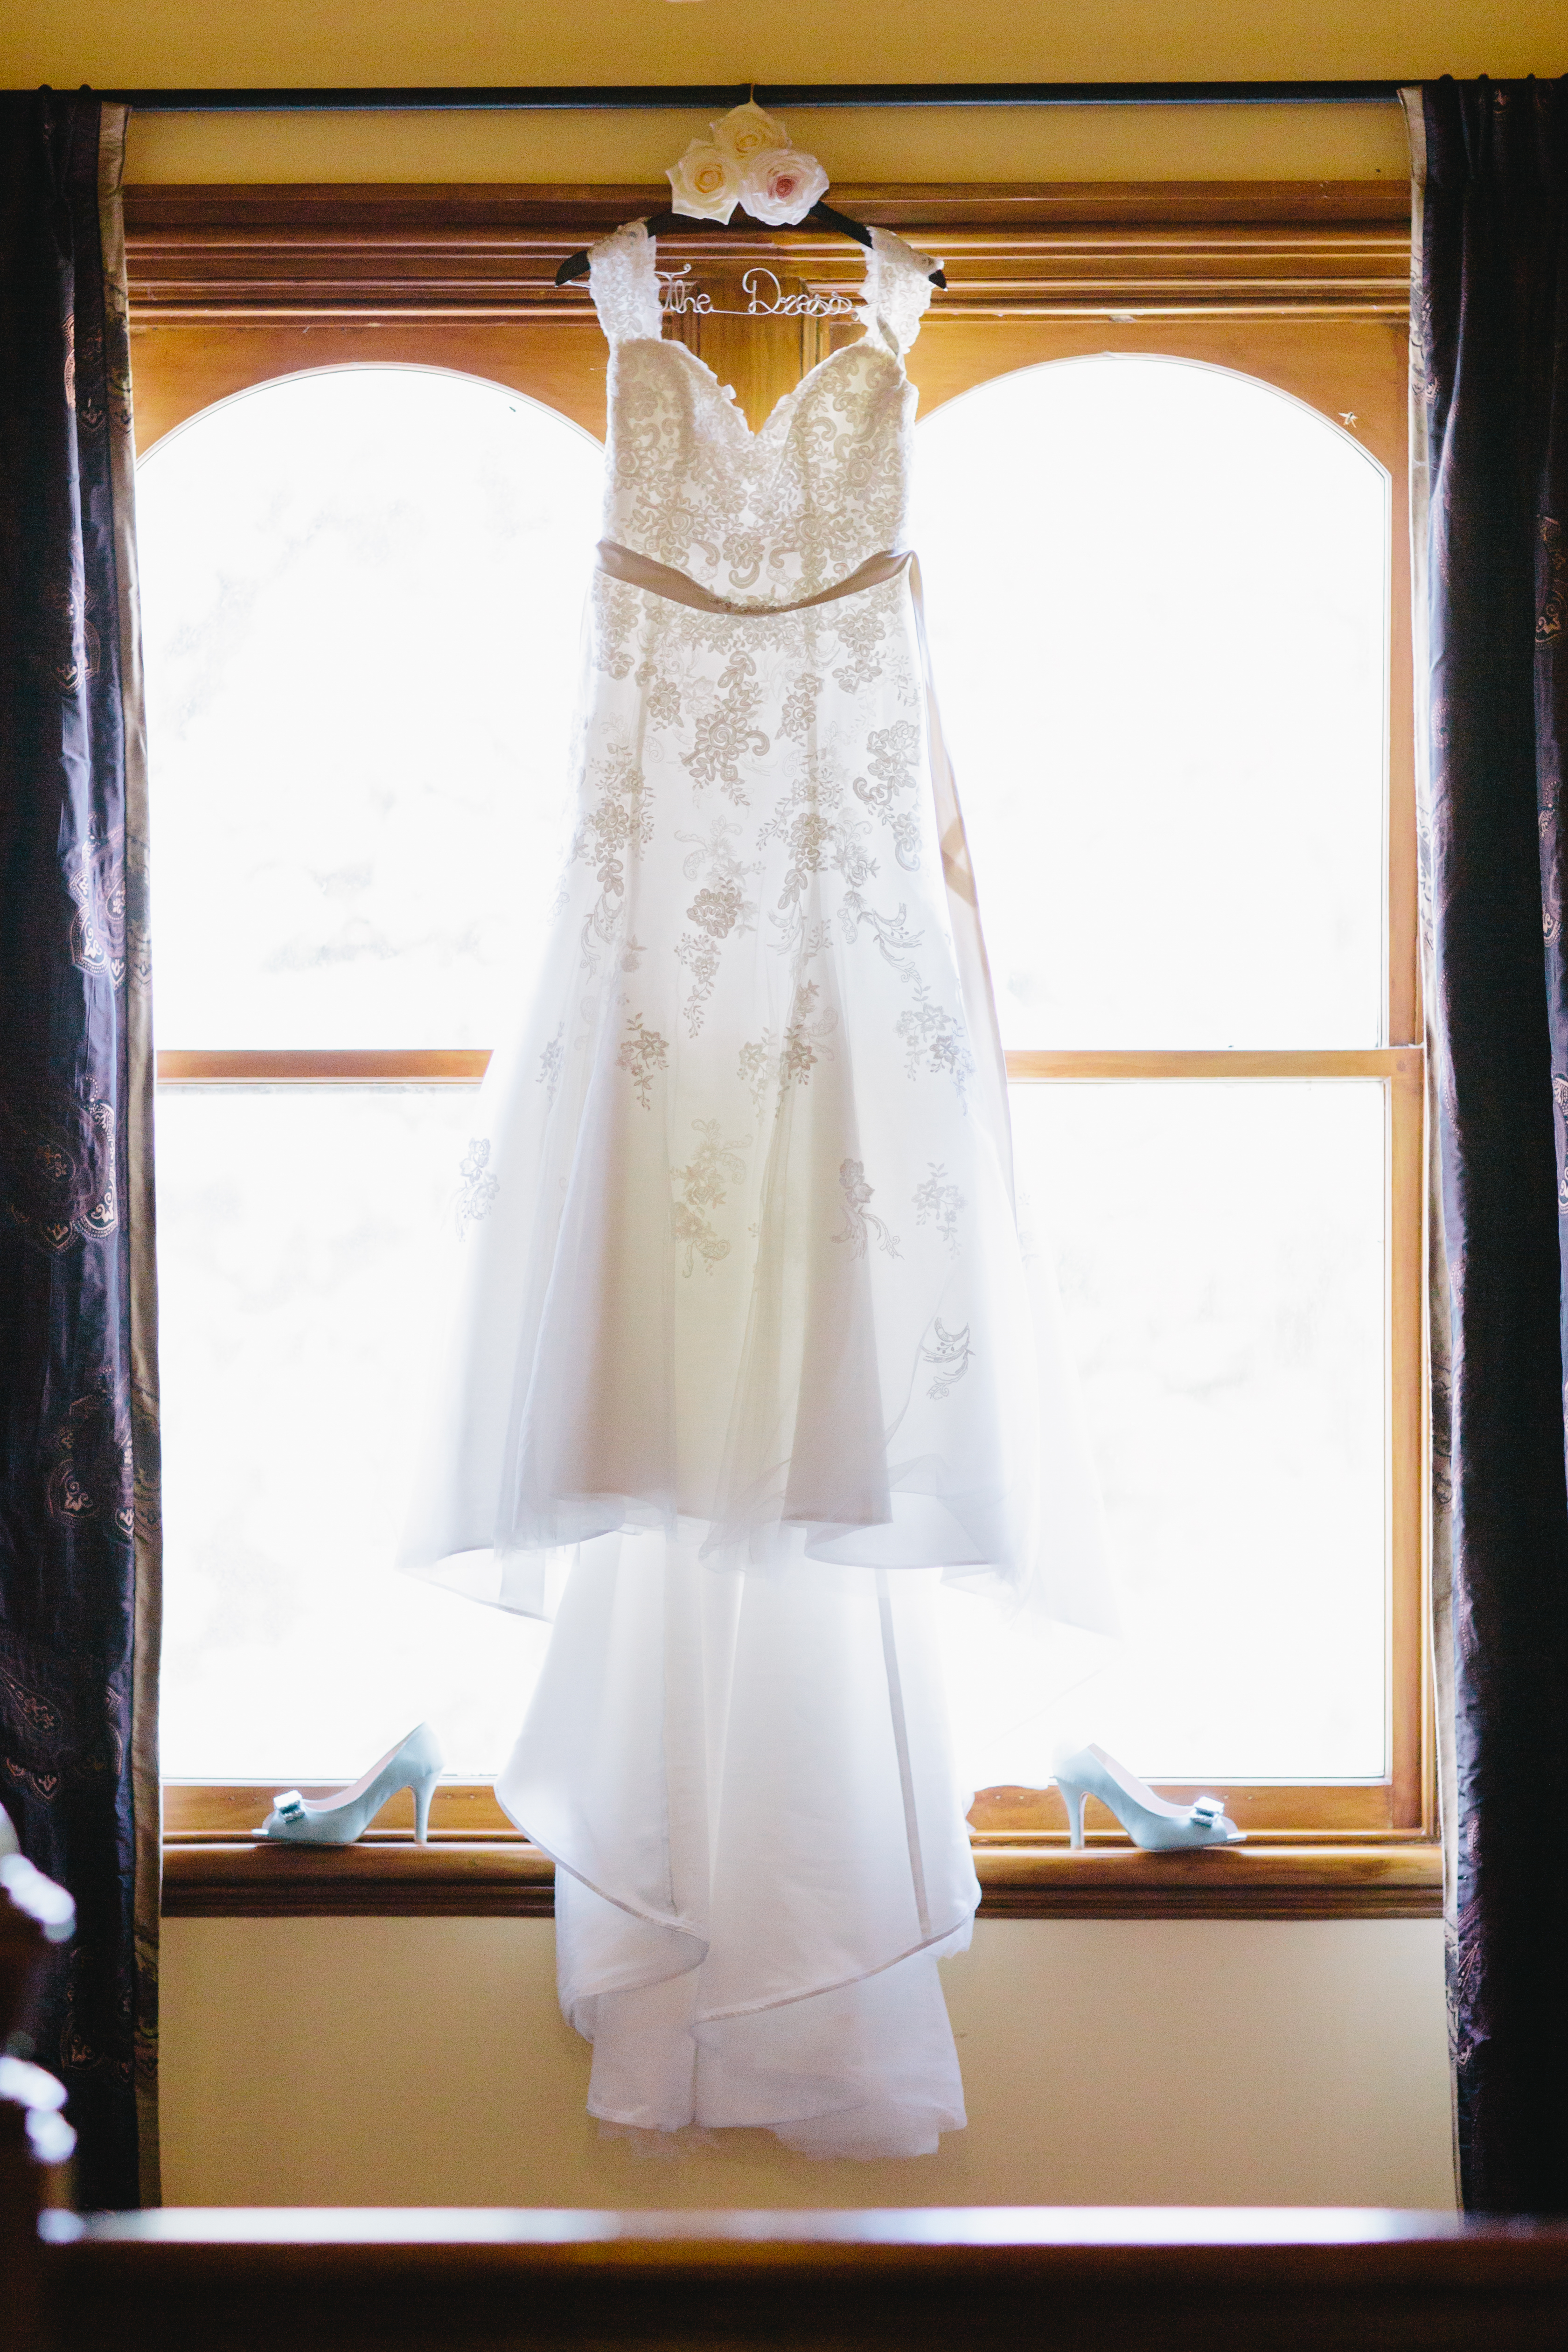 My Dress (and other pieces from our wedding day) – Kat in Edinburgh